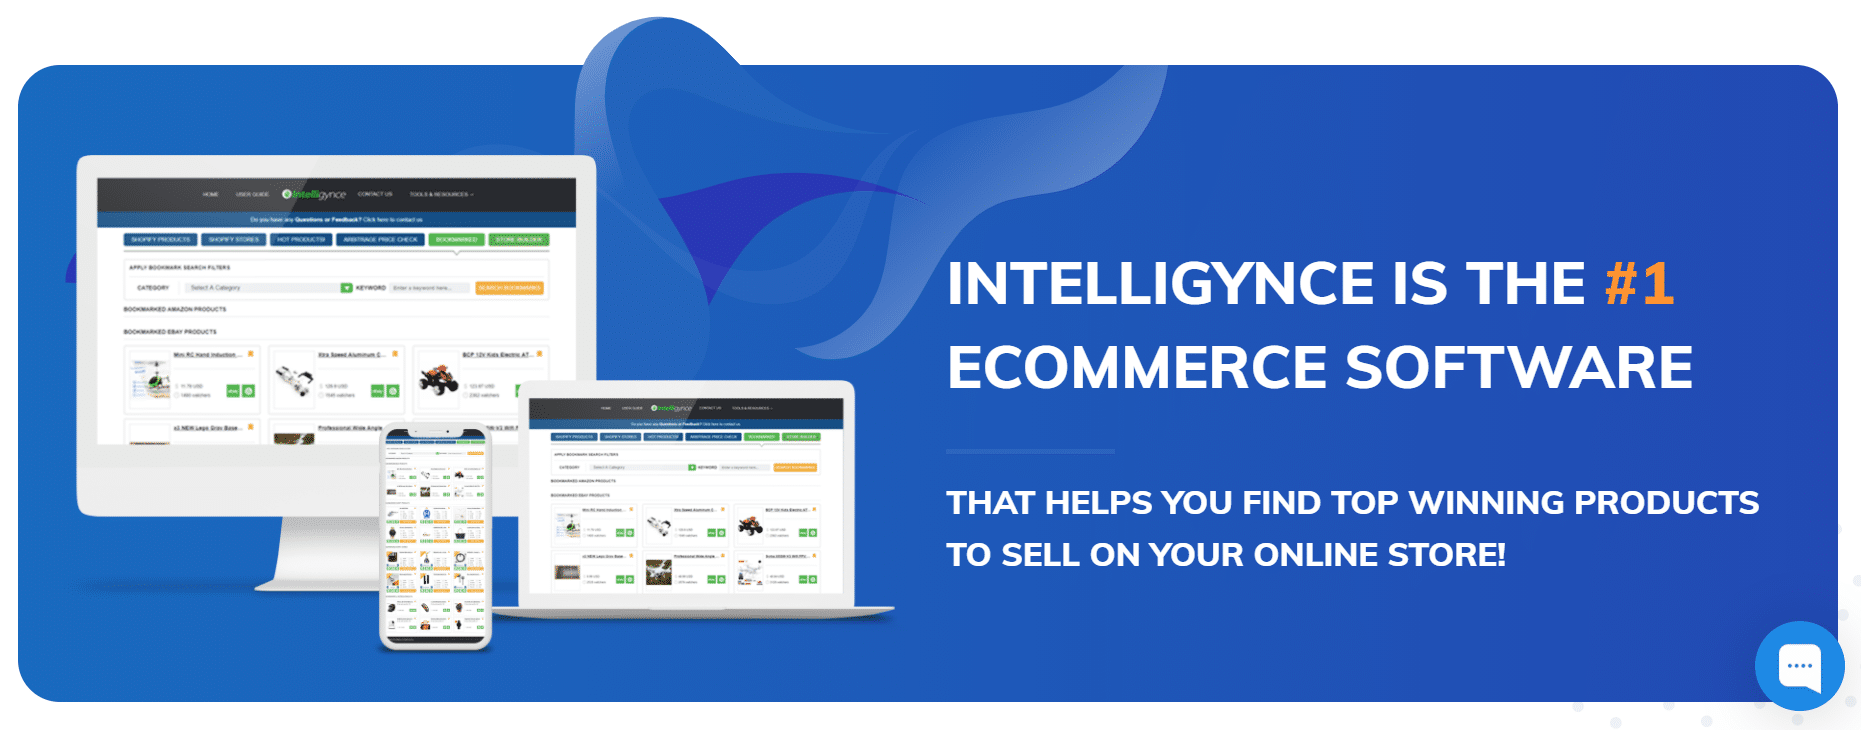 Shopify-Analysis-Tools-Intelligynce-Review